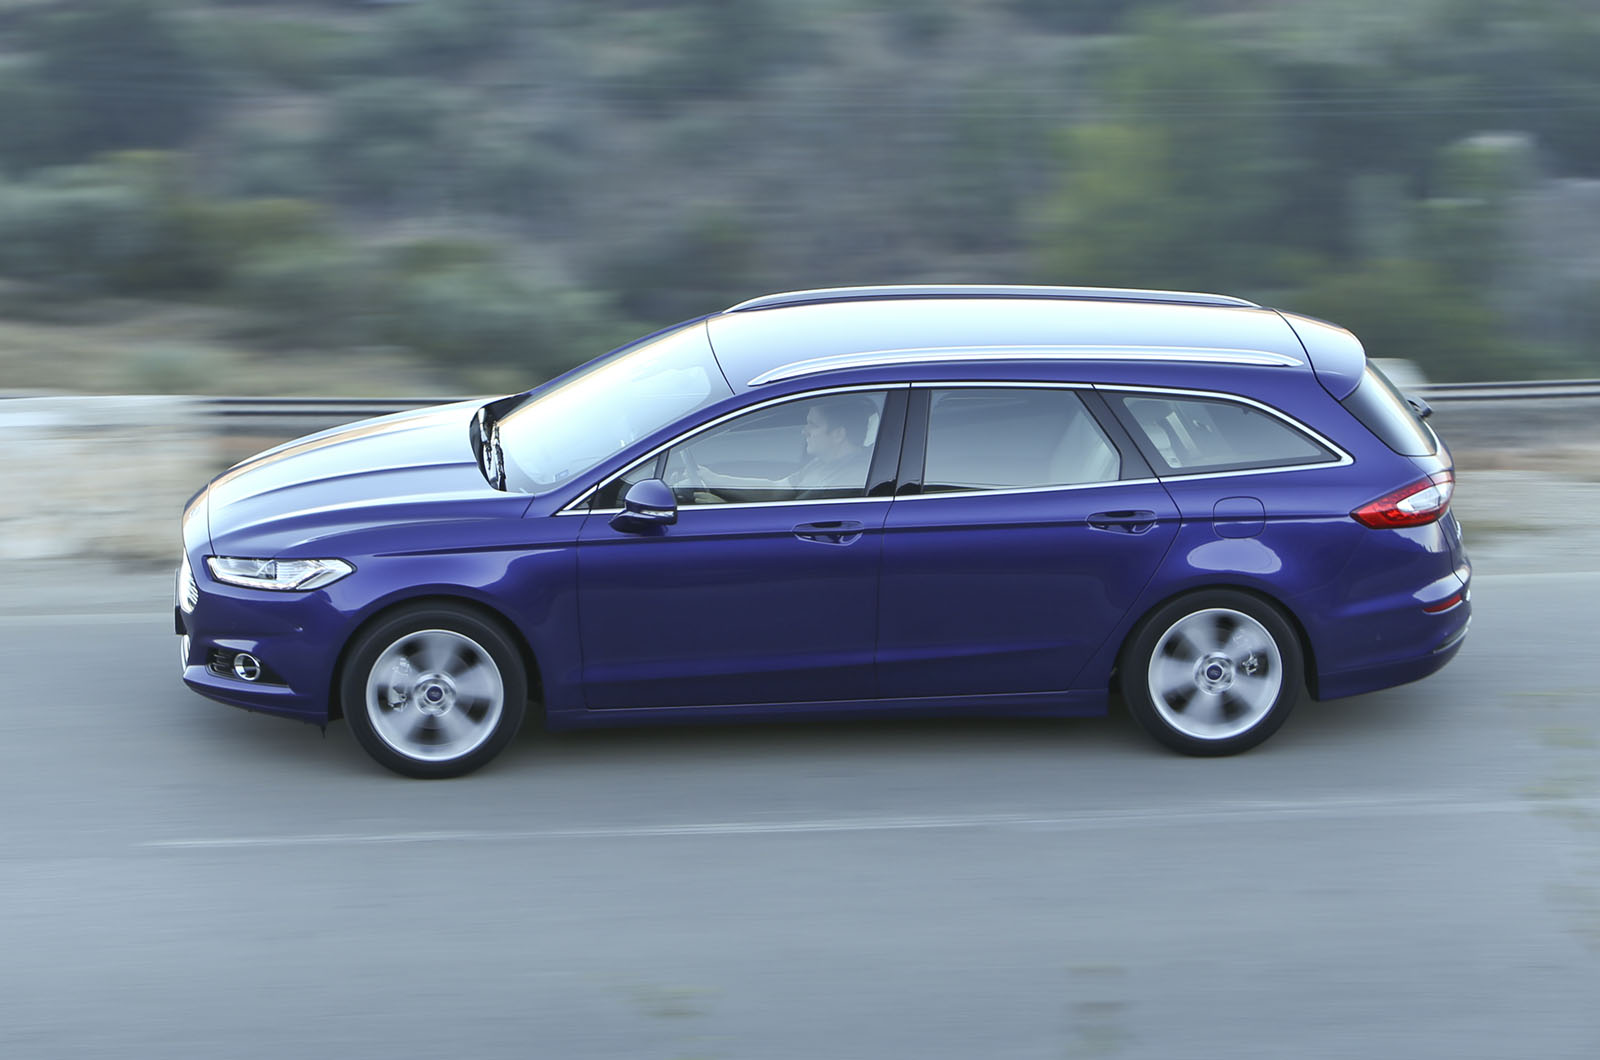 2014 ford mondeo estate 1 5t ecoboost first drive review autocar. Black Bedroom Furniture Sets. Home Design Ideas